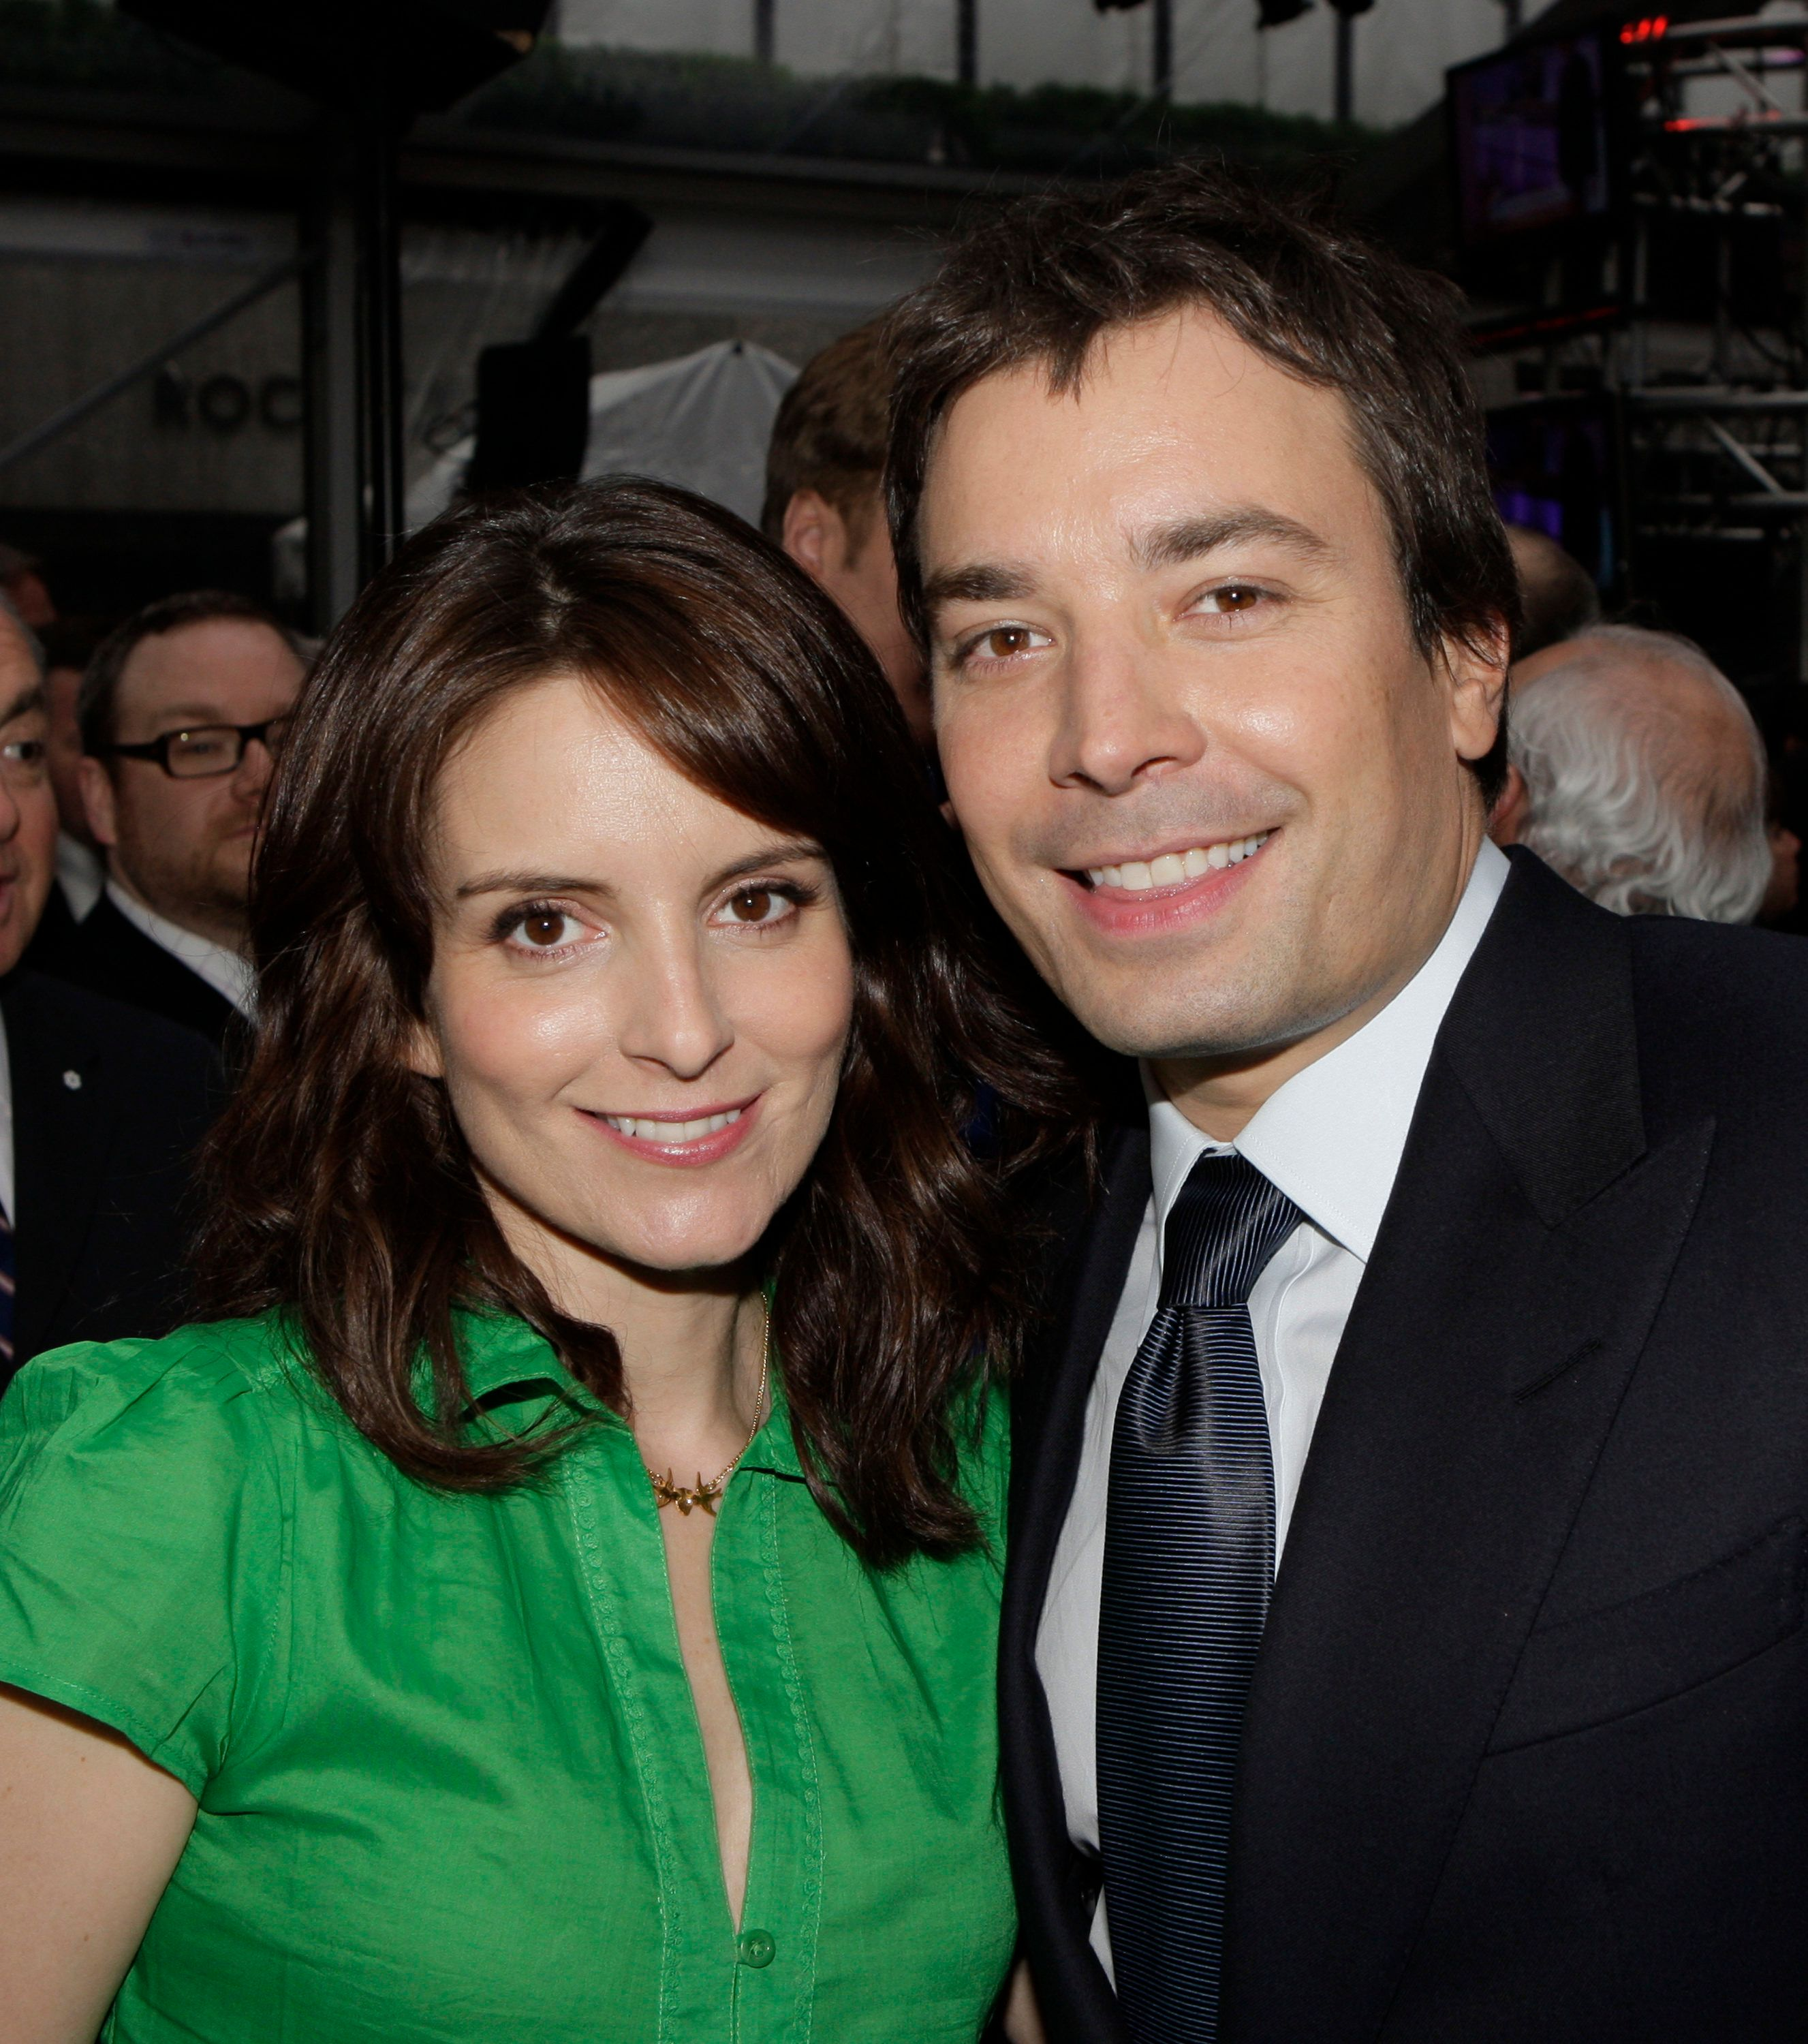 NBC UNIVERSAL EXPERIENCE -- Picturd: (l-r) Tina Fey and Jimmy Fallon attend the NBC Universal Experience party at Rockefeller Center in New York, NY on May 12, 2008  (Photo by Paul Drinkwater/NBC/NBCU Photo Bank via Getty Images)